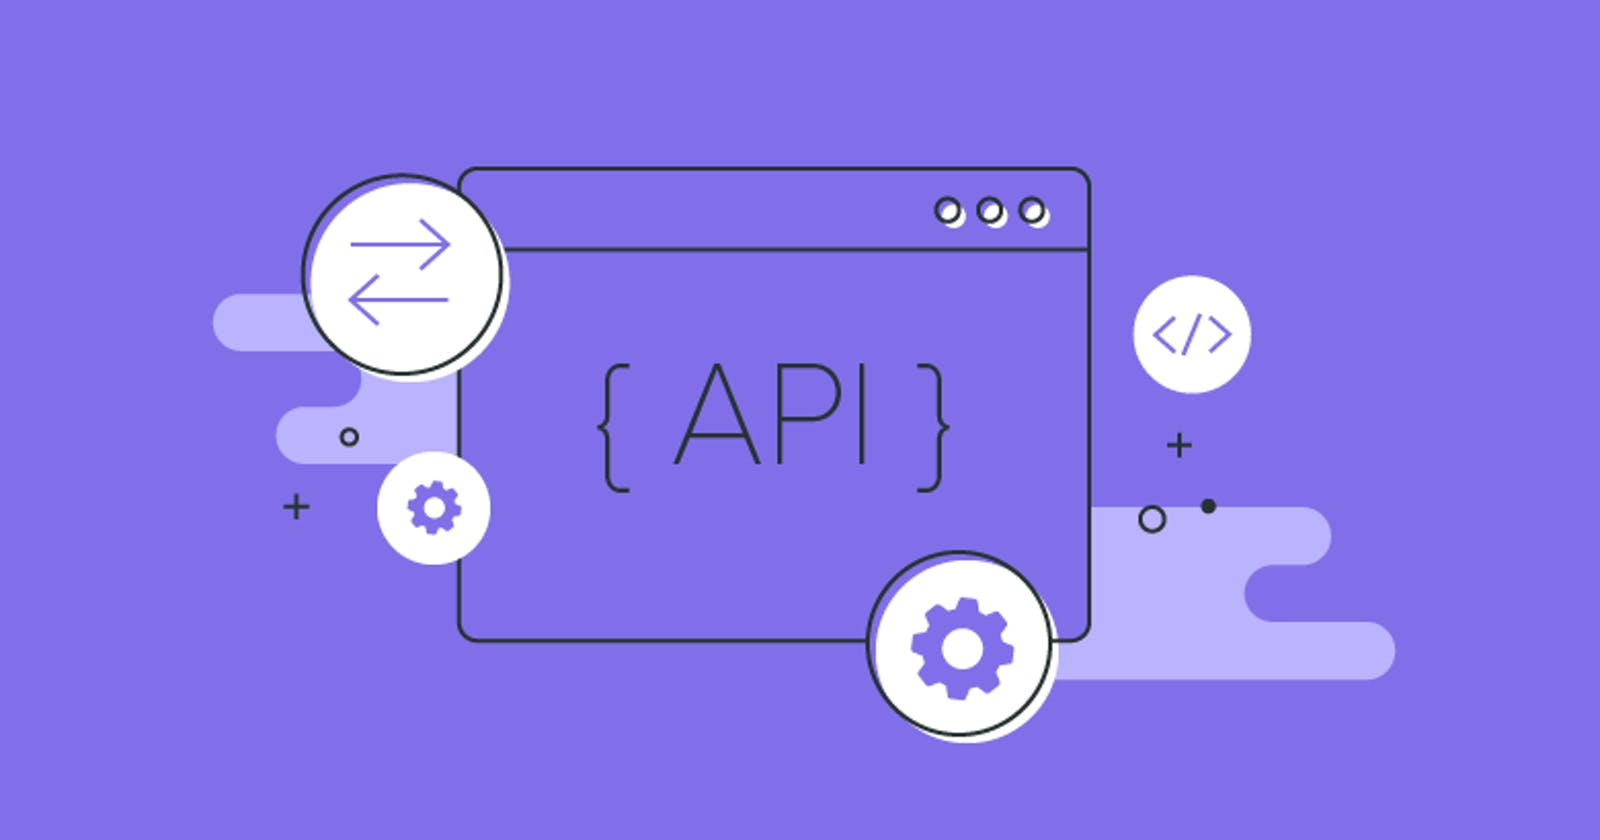 An API? What exactly is it?